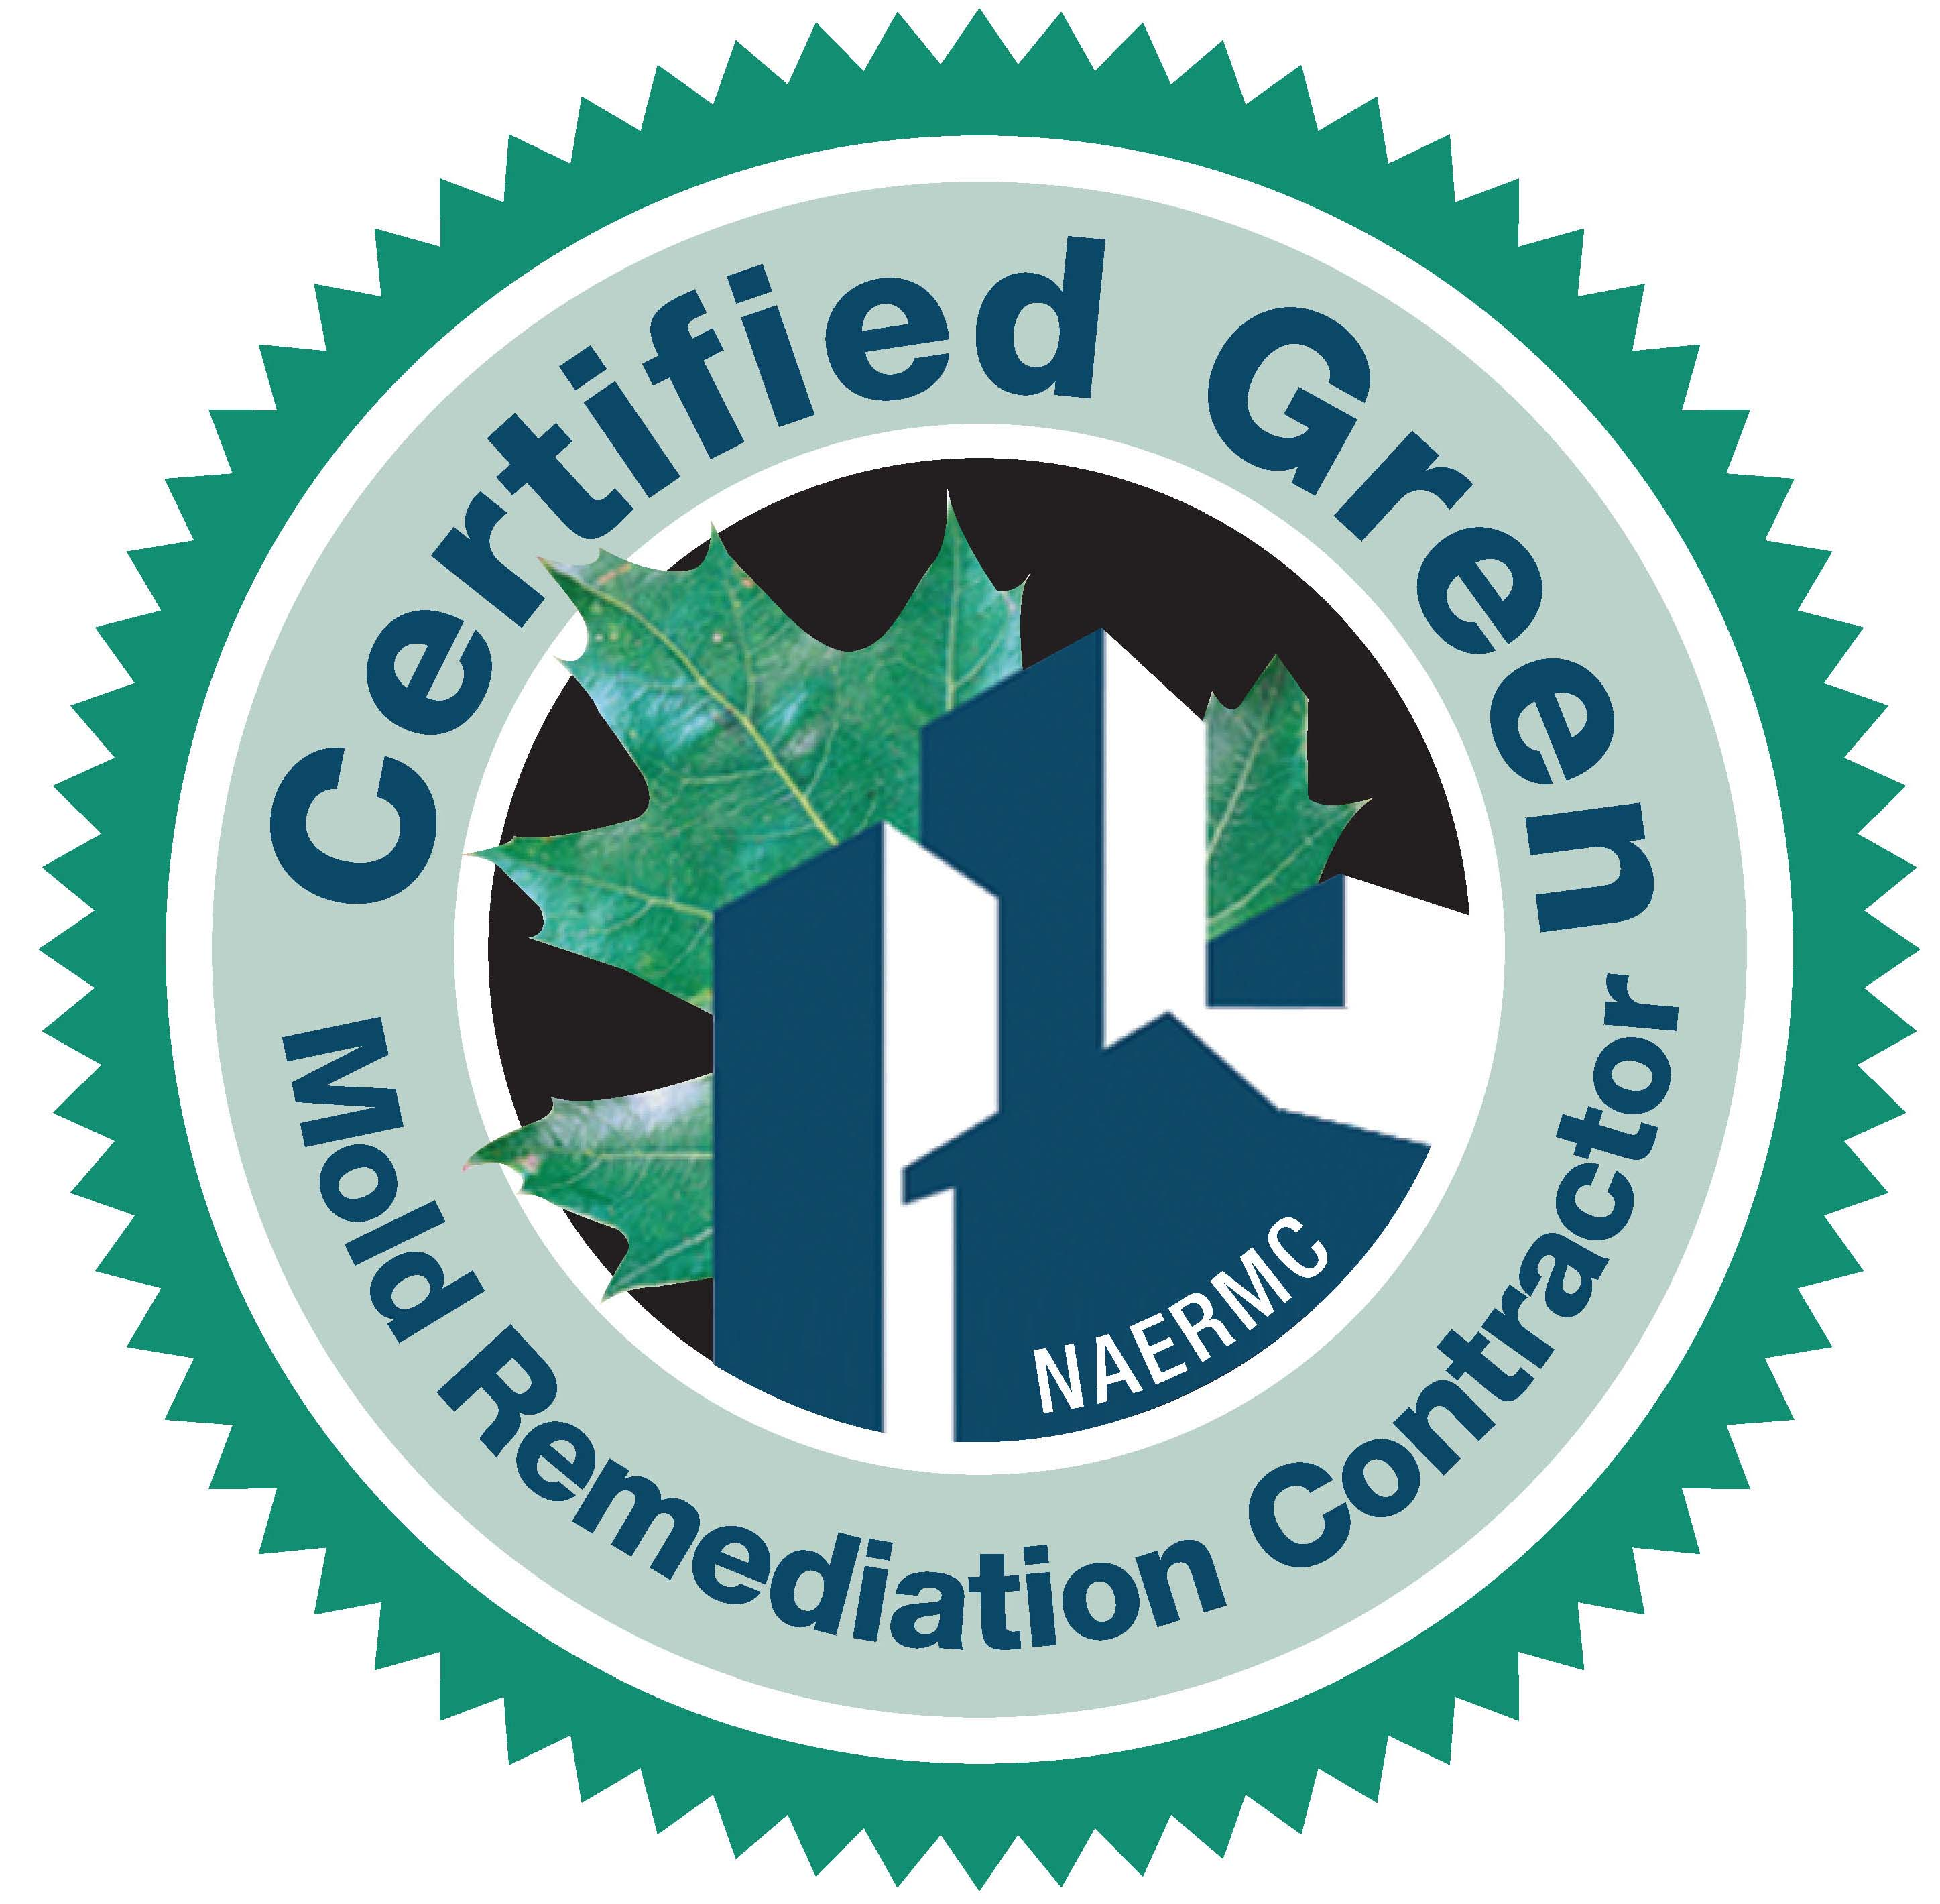 NAERMC- Certified Green Mold Remediation Contractor.jpg